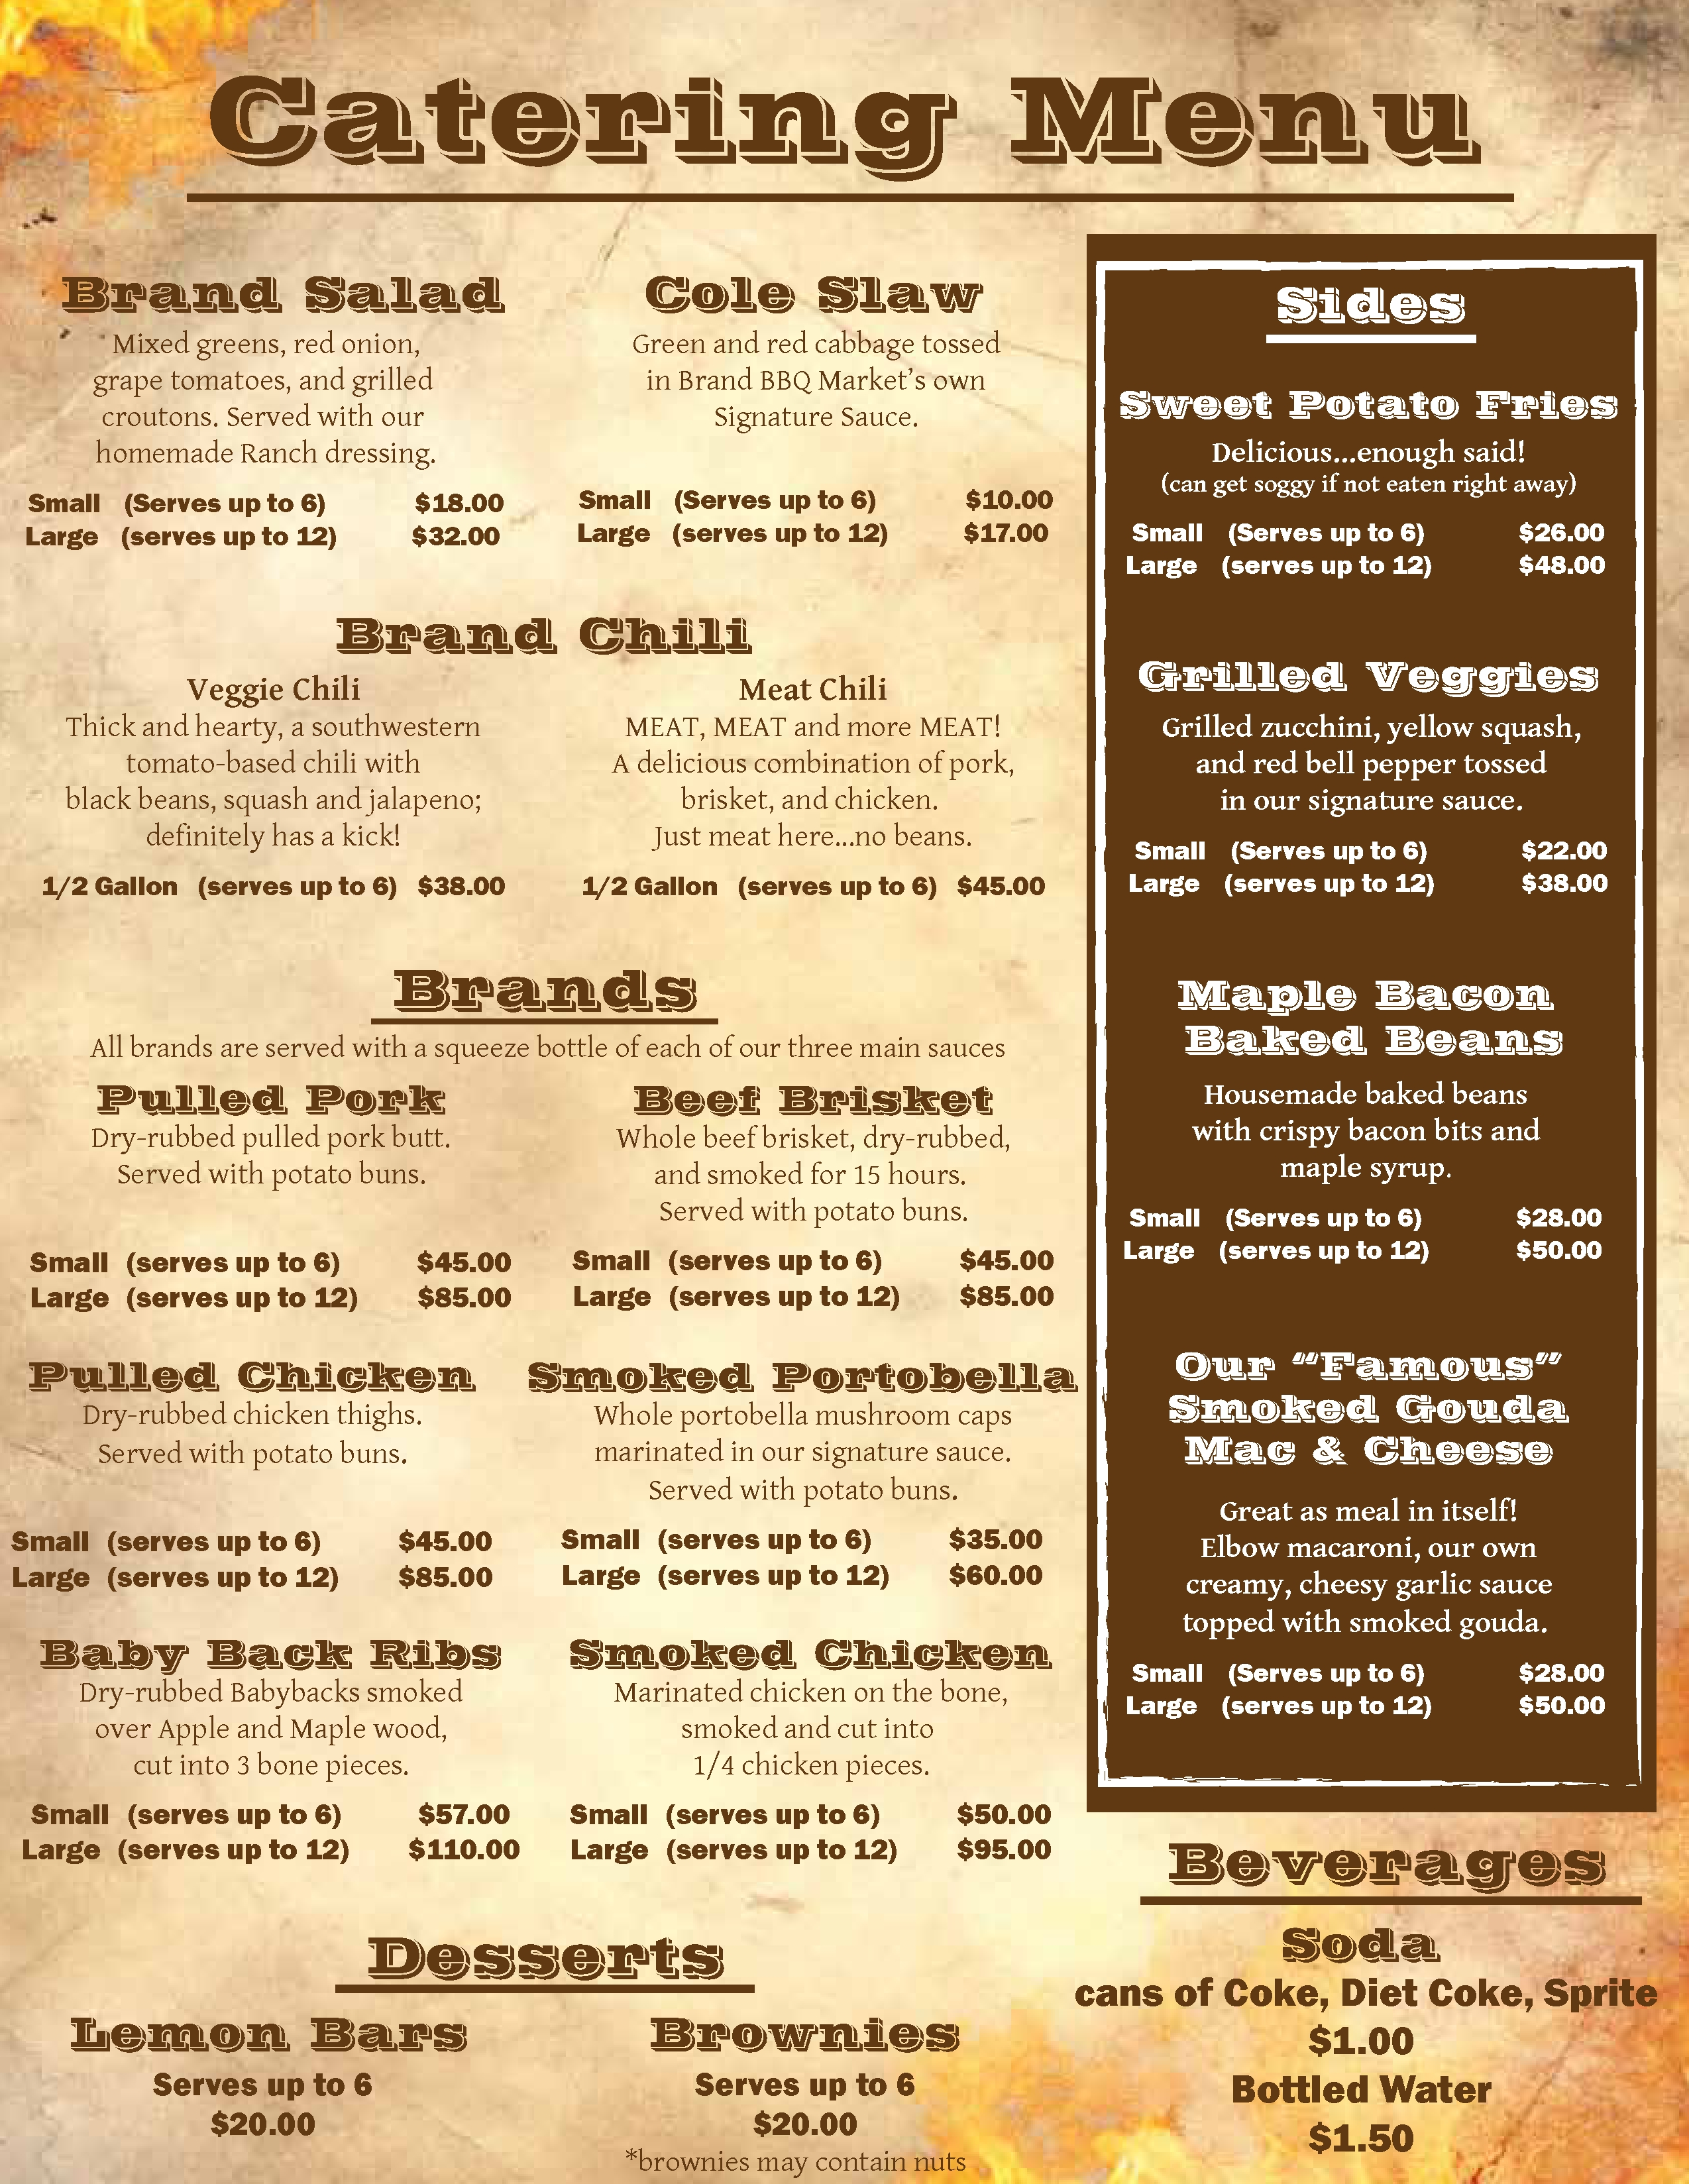 brand bbq food truck catering menu - page 2 of 2 - chicago